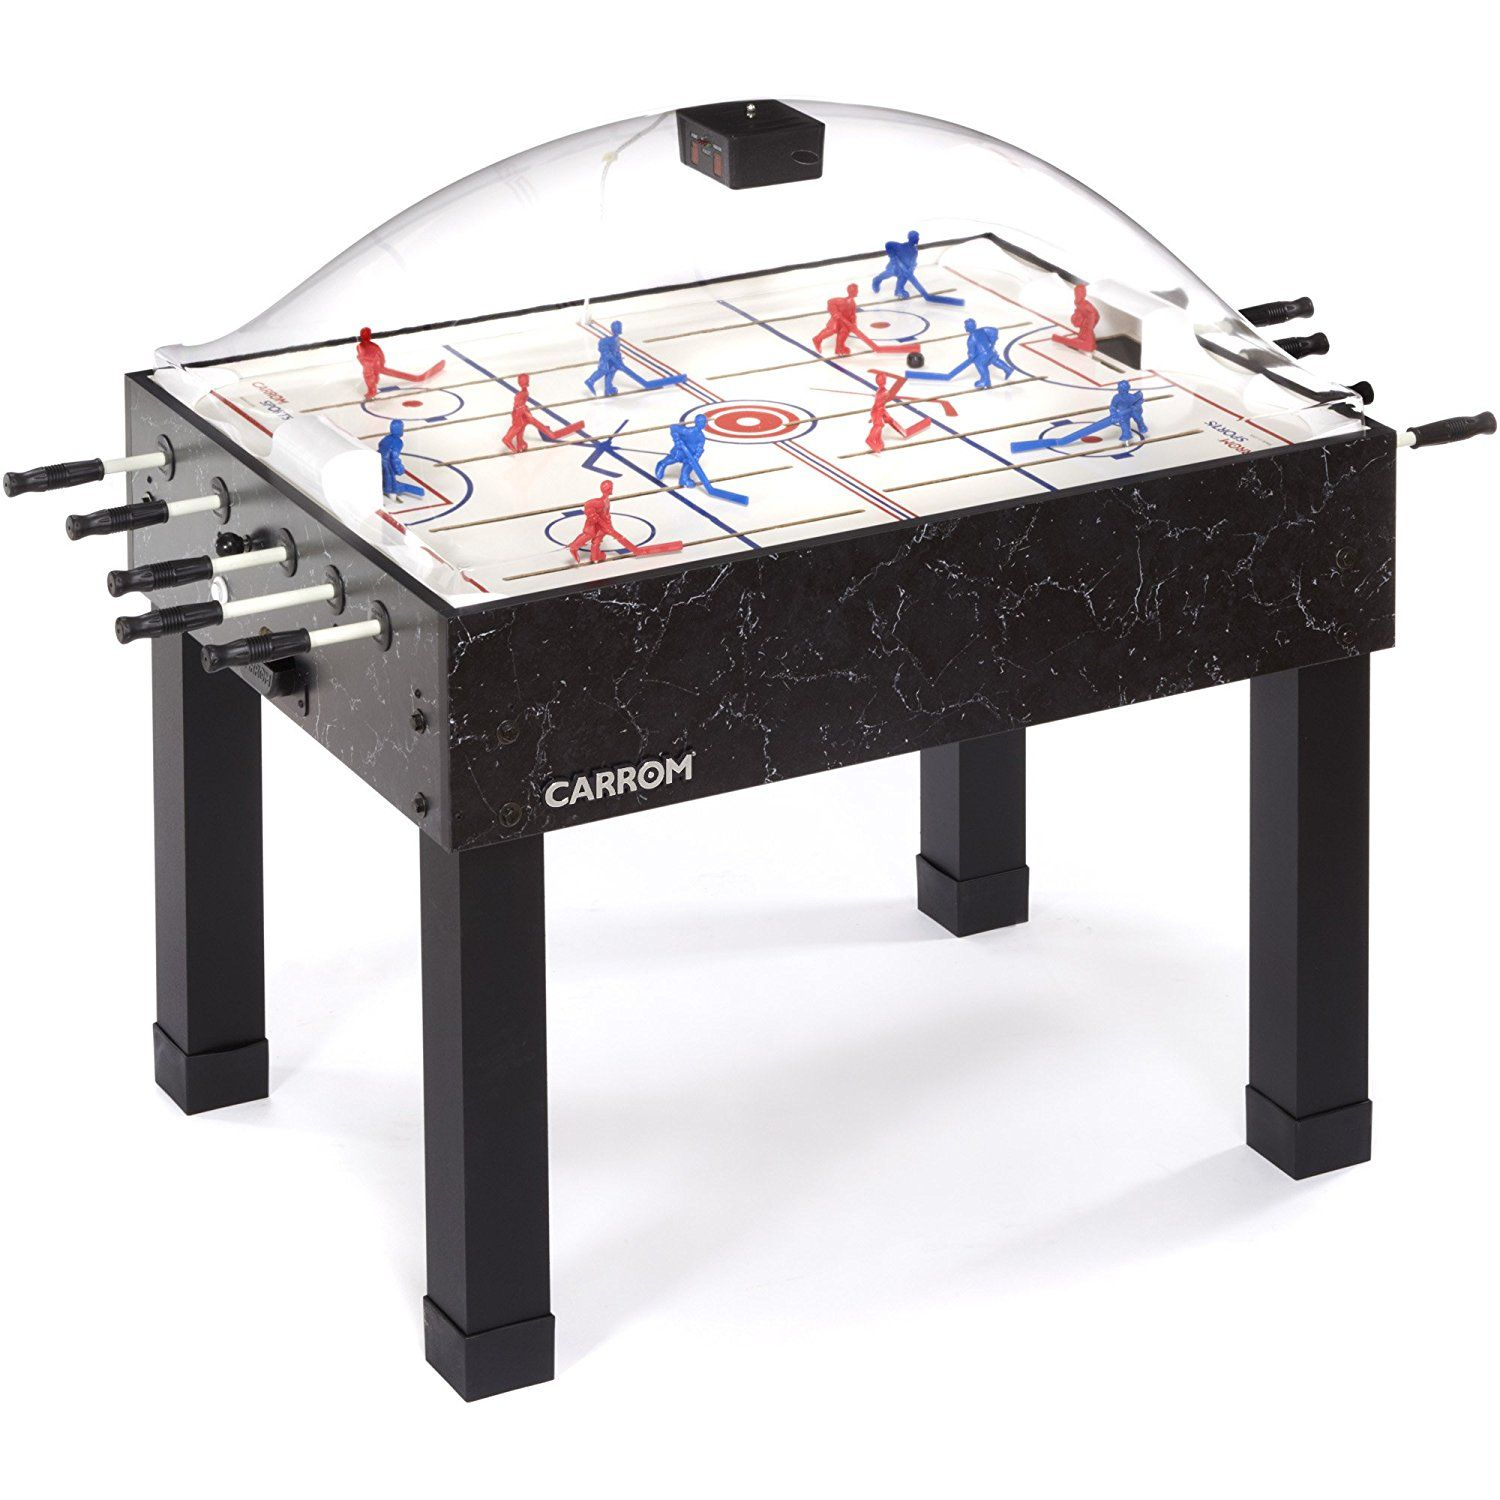 Amazon Com Carrom 415 Super Stick Hockey Table Dome Hockey Tables Sports Outdoors Game Room Hockey Air Hockey Table